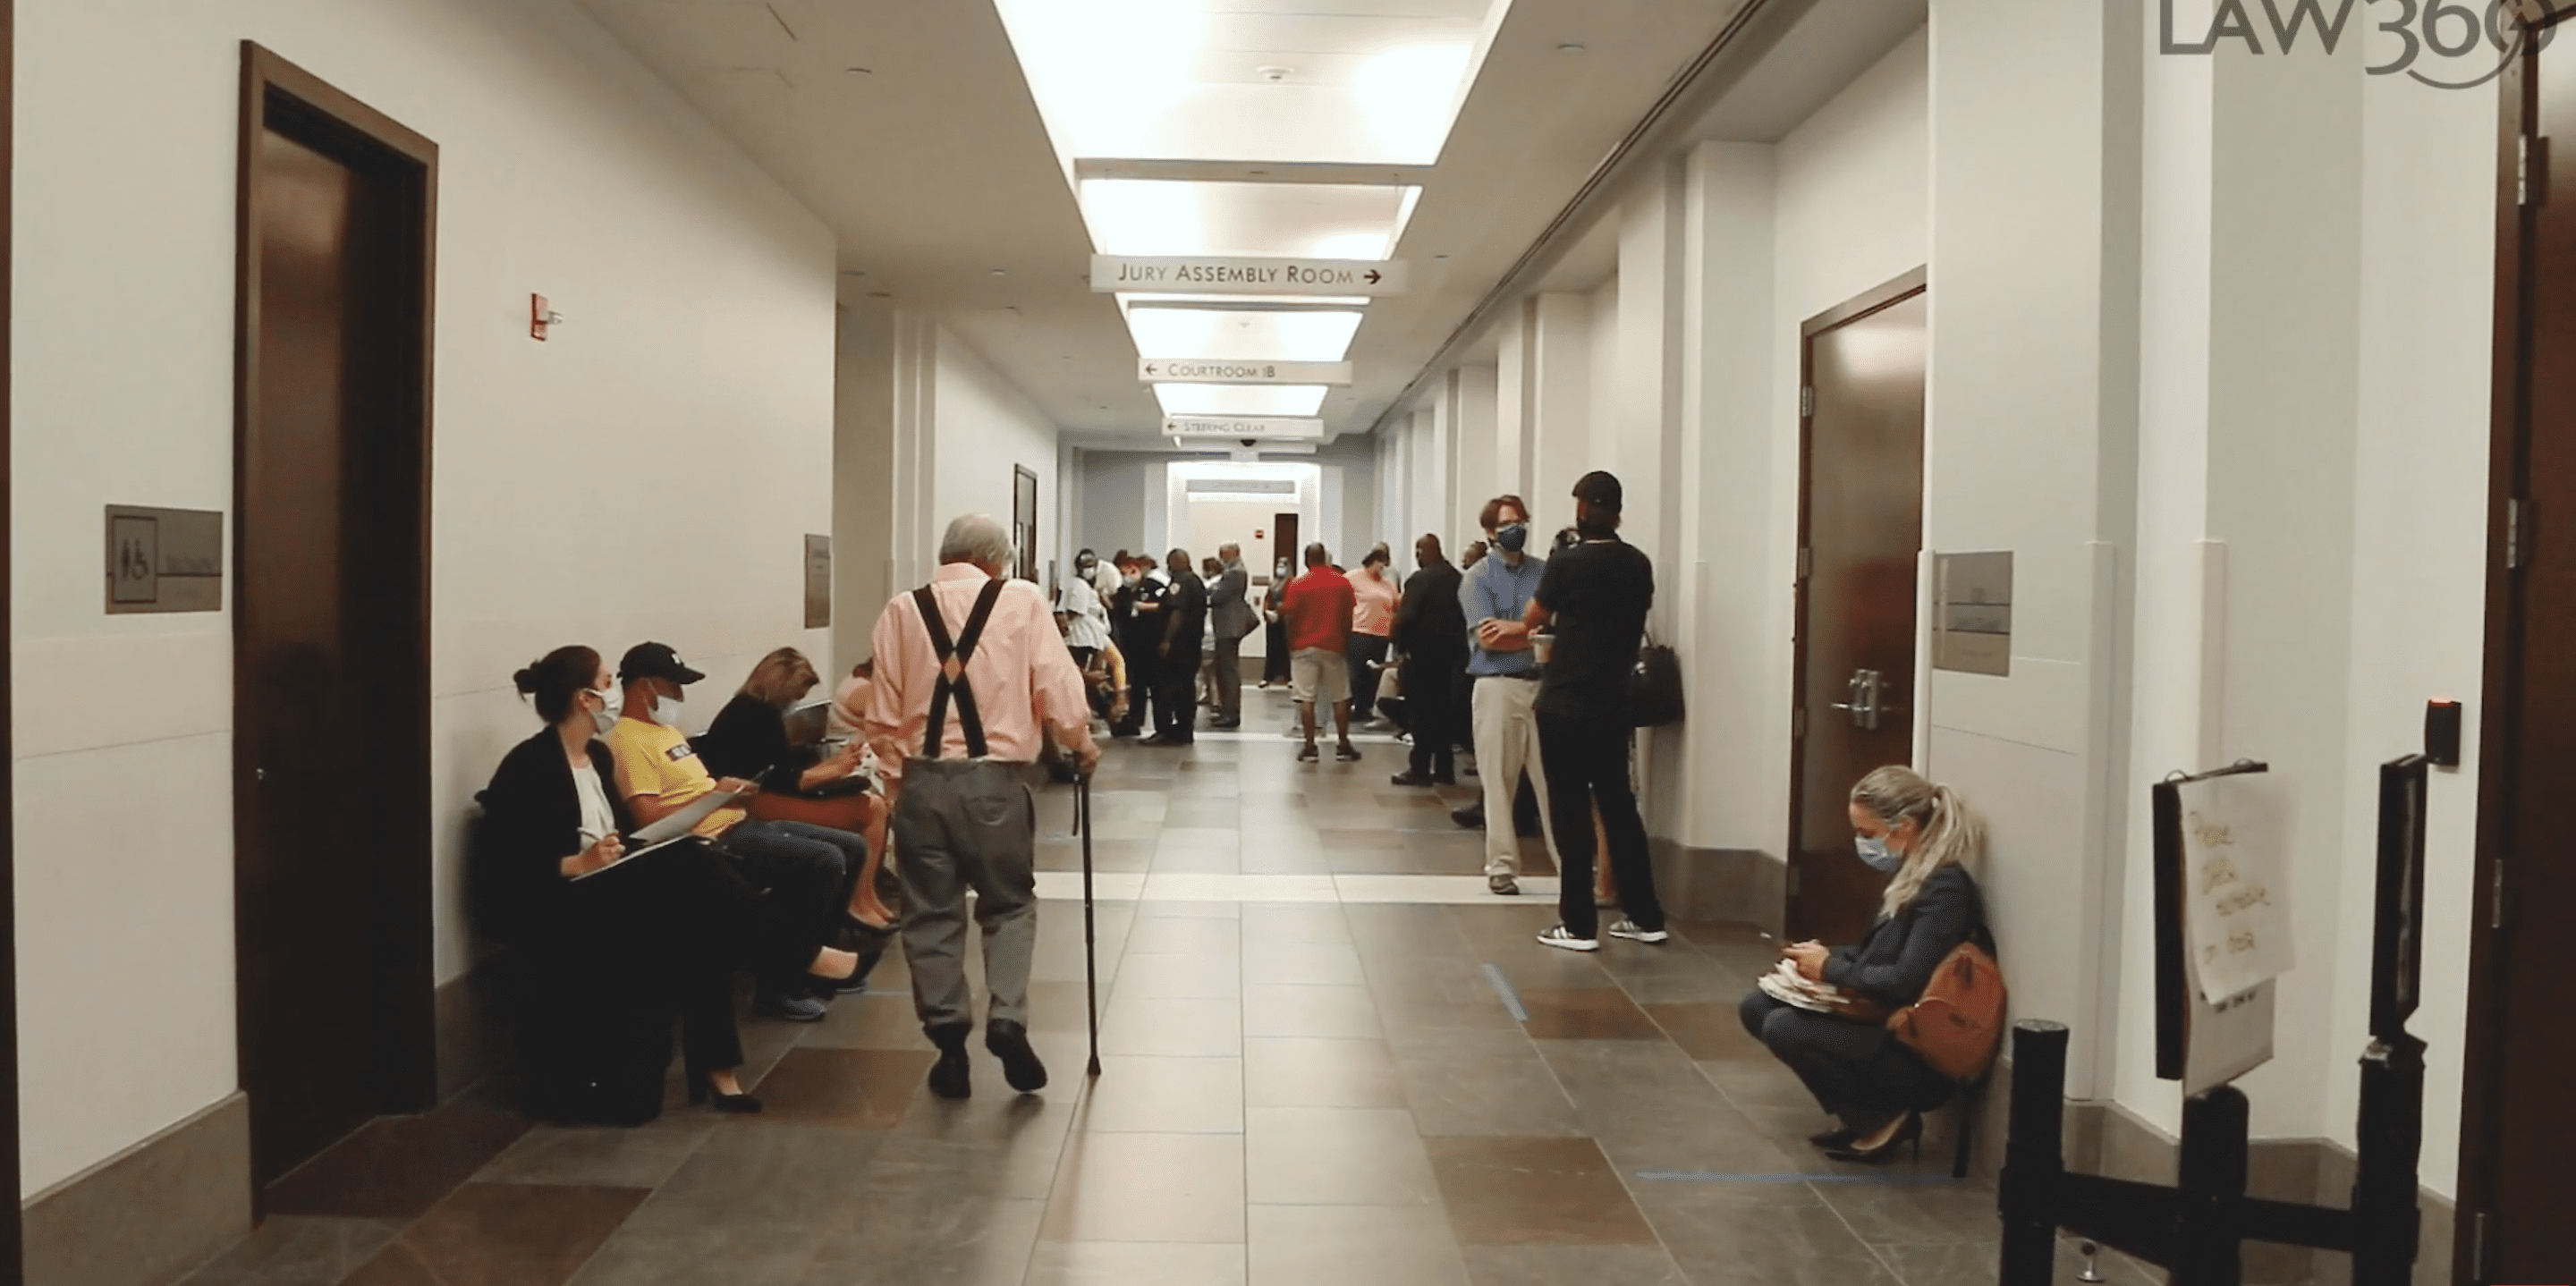 Hallway filled with people in a housing court.